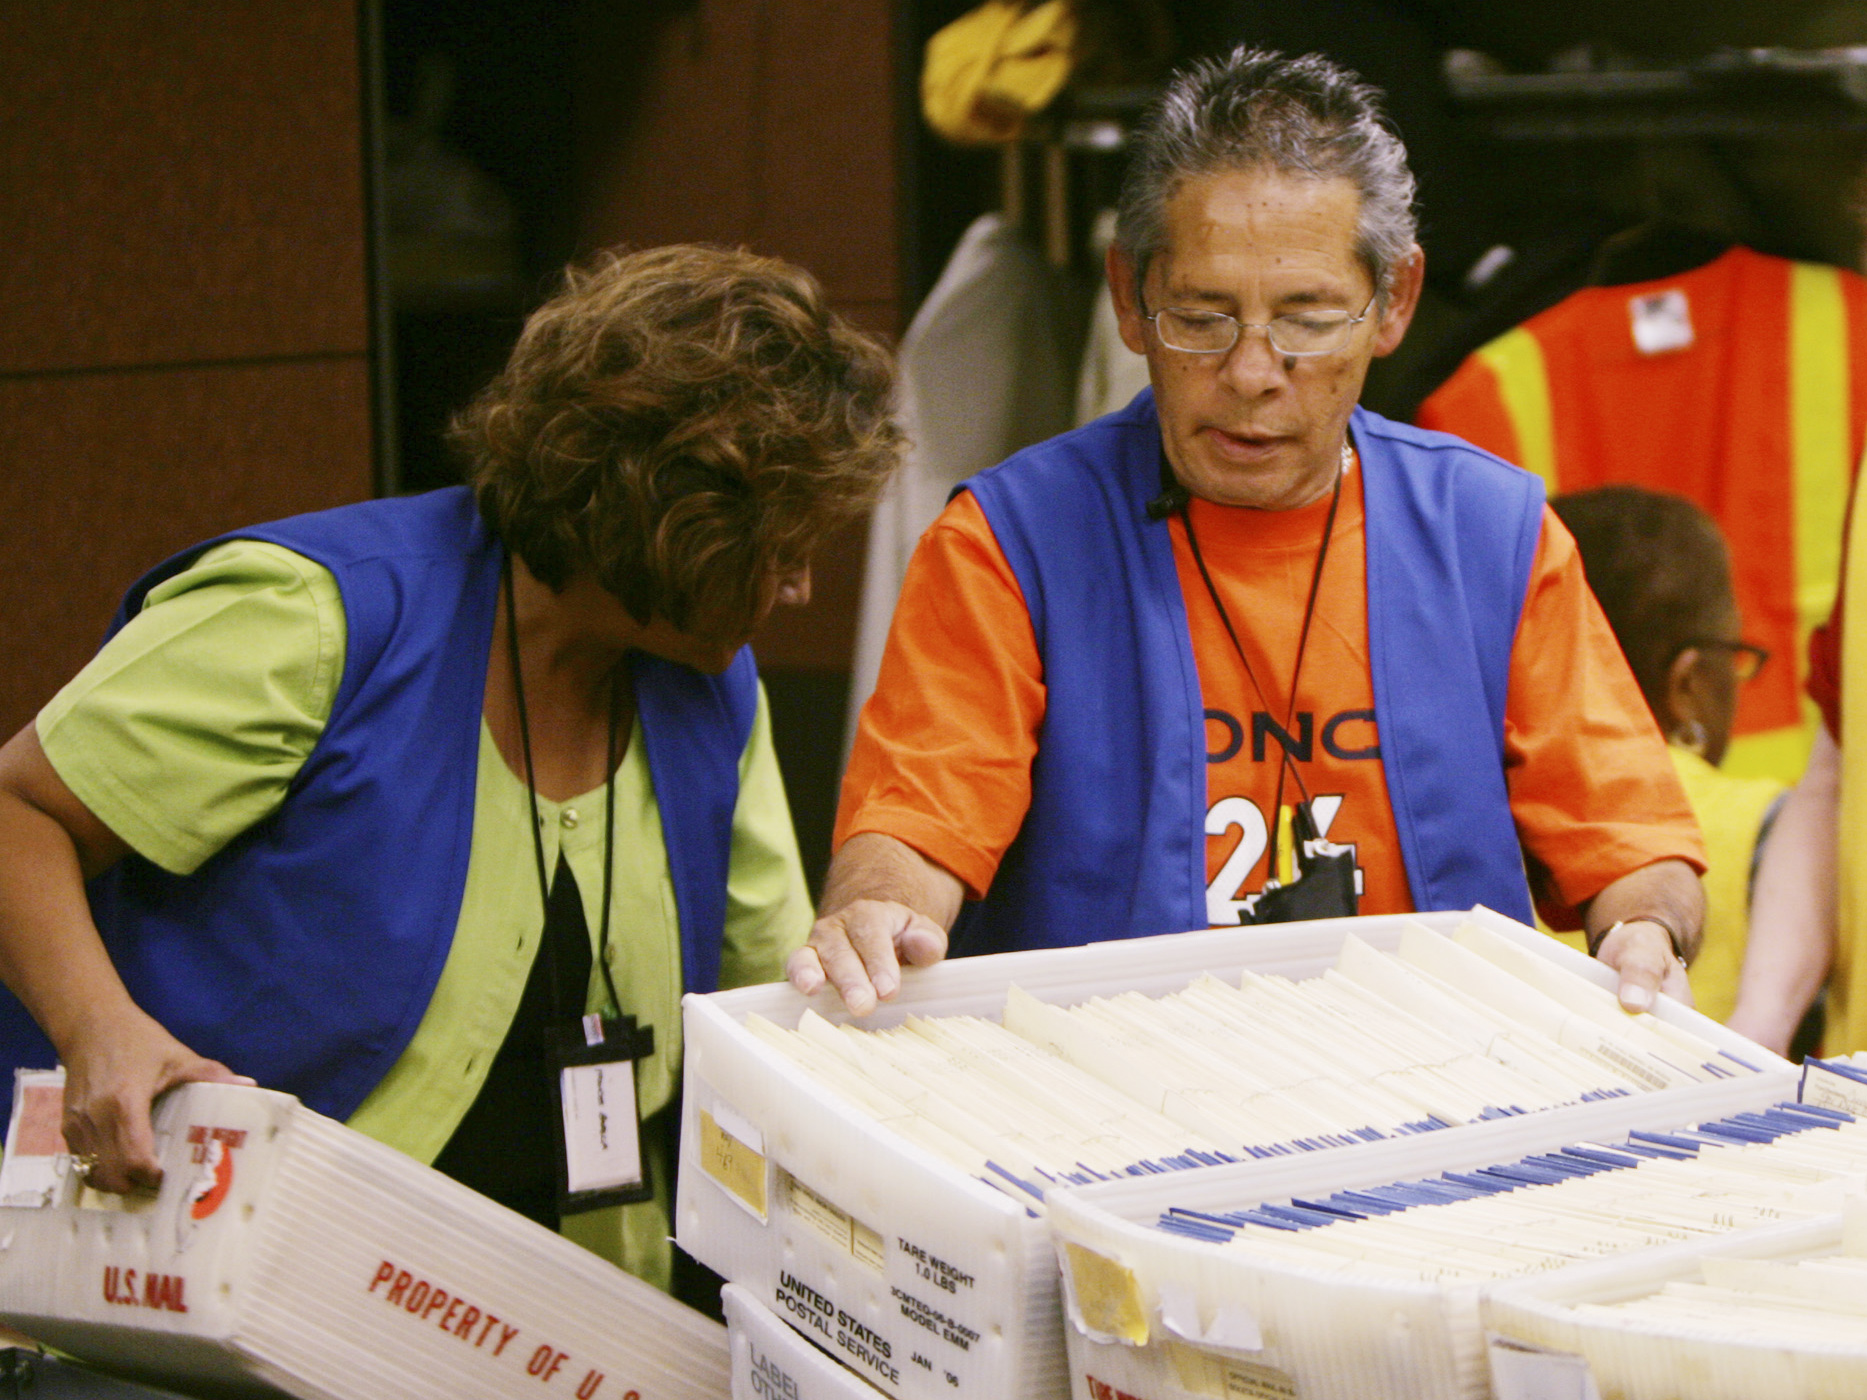 Photo: Mail-in ballots (AP Photo)